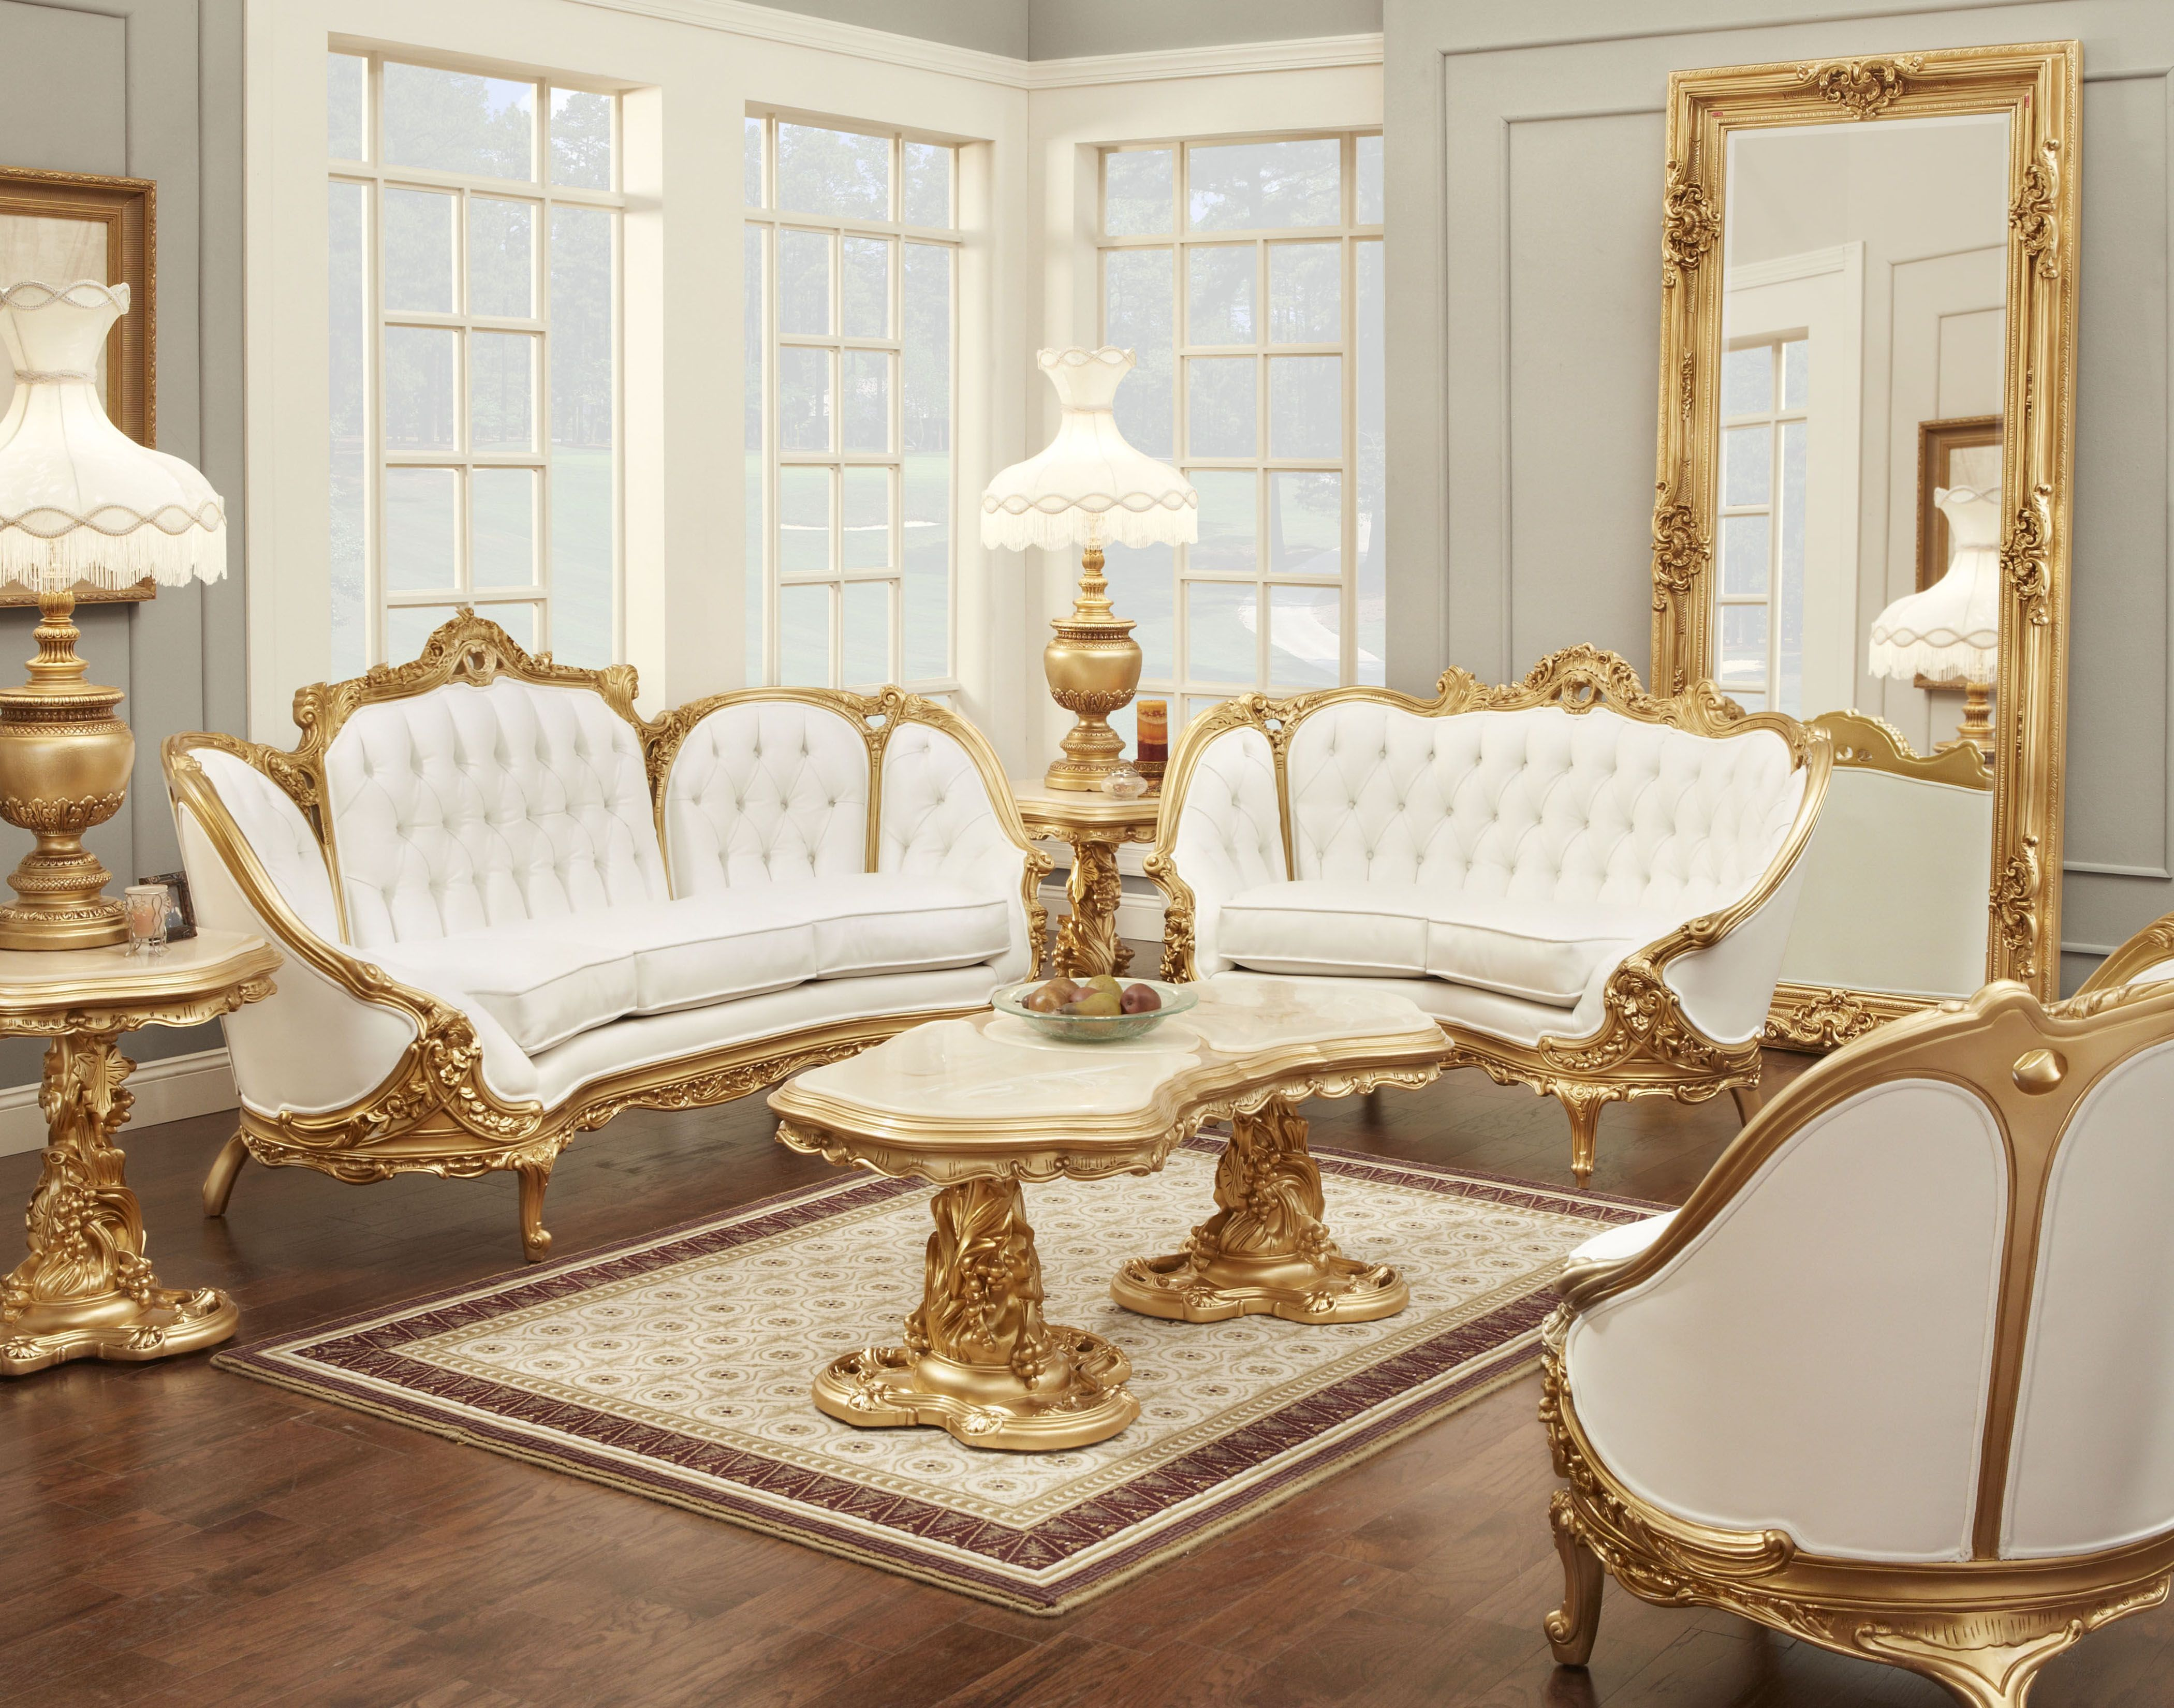 Awesome fabulous upholstered of luxury living room furniture there are also